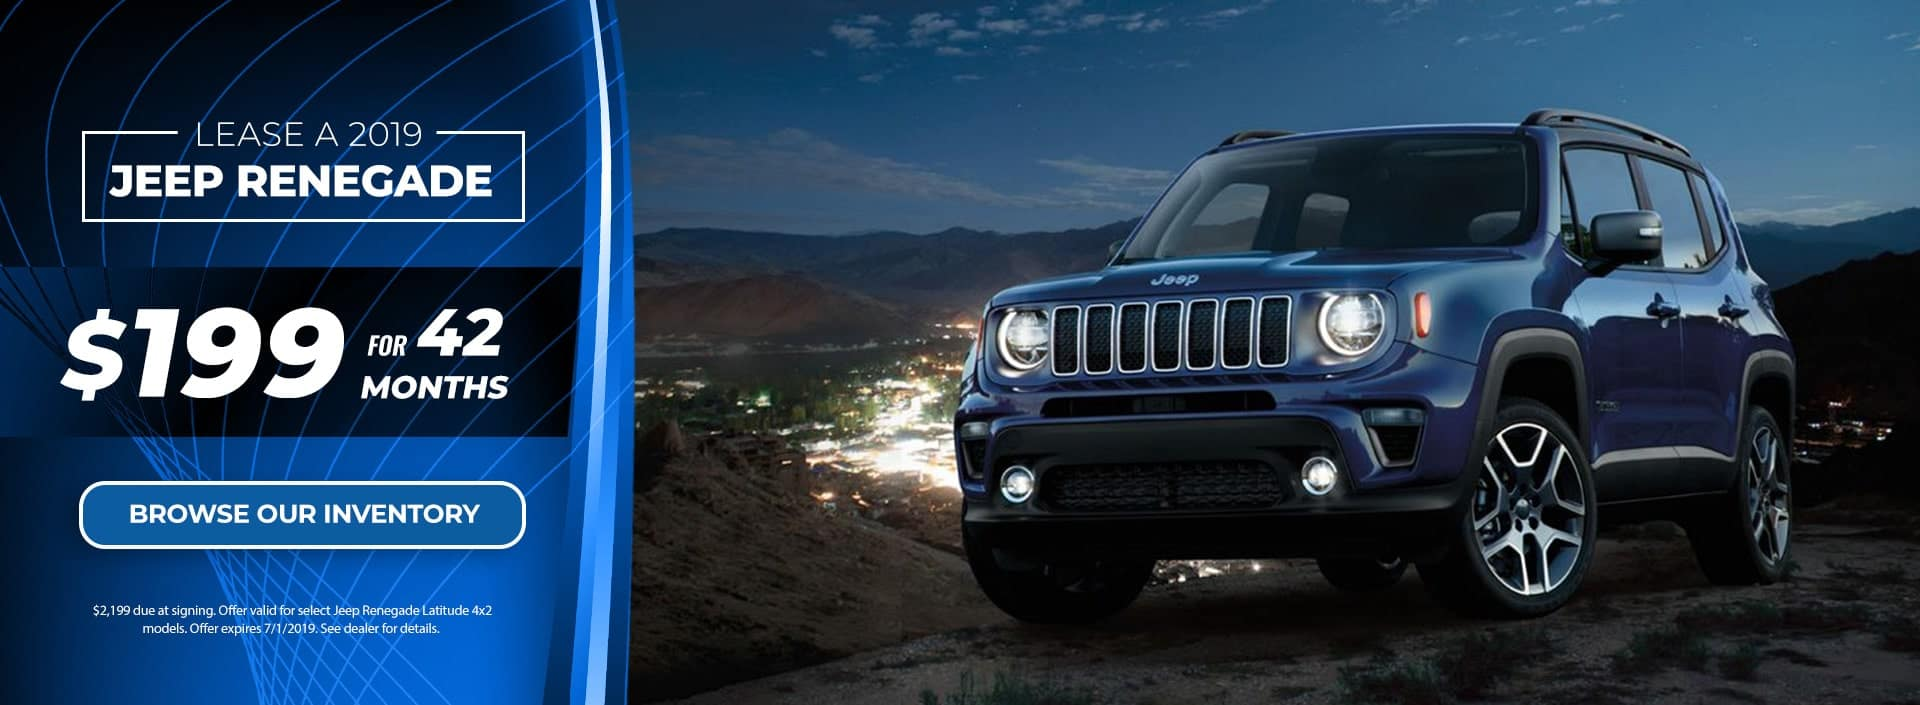 Jeep Renegade June 2019 Offer at Ed Voyles CDJR in Marietta GA